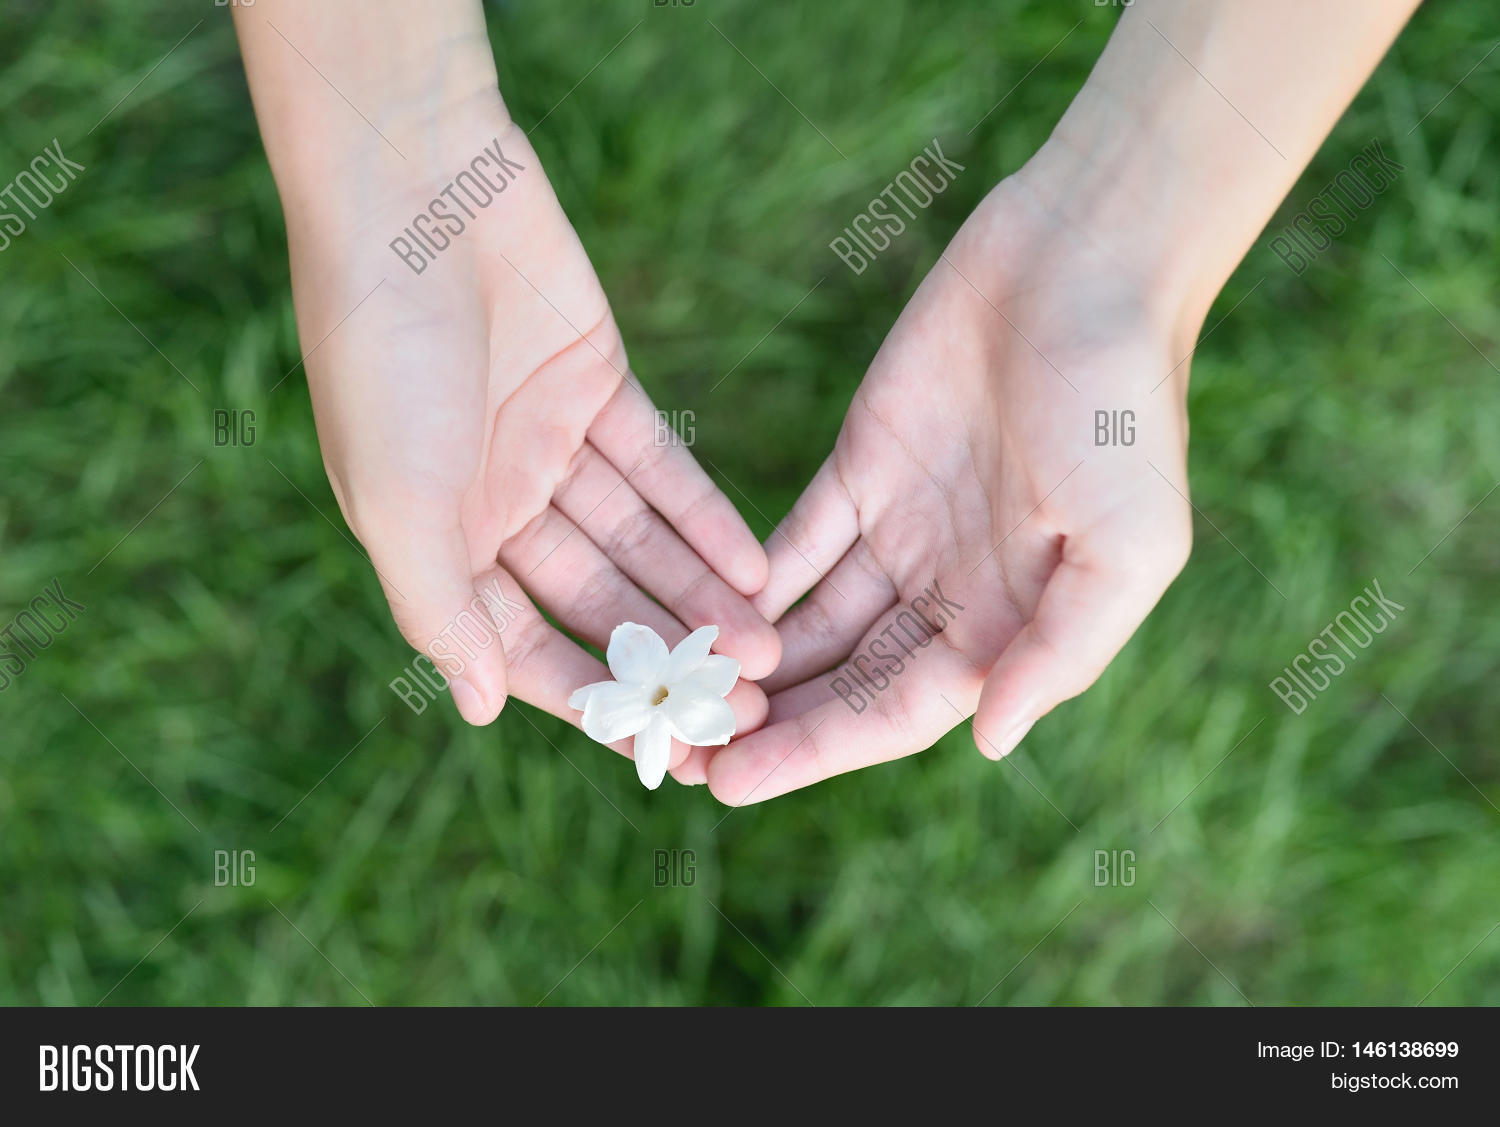 Asian girl hands image photo free trial bigstock asian girl hands holding white jasmine flowers this flower is symbol of thailand mothers day izmirmasajfo